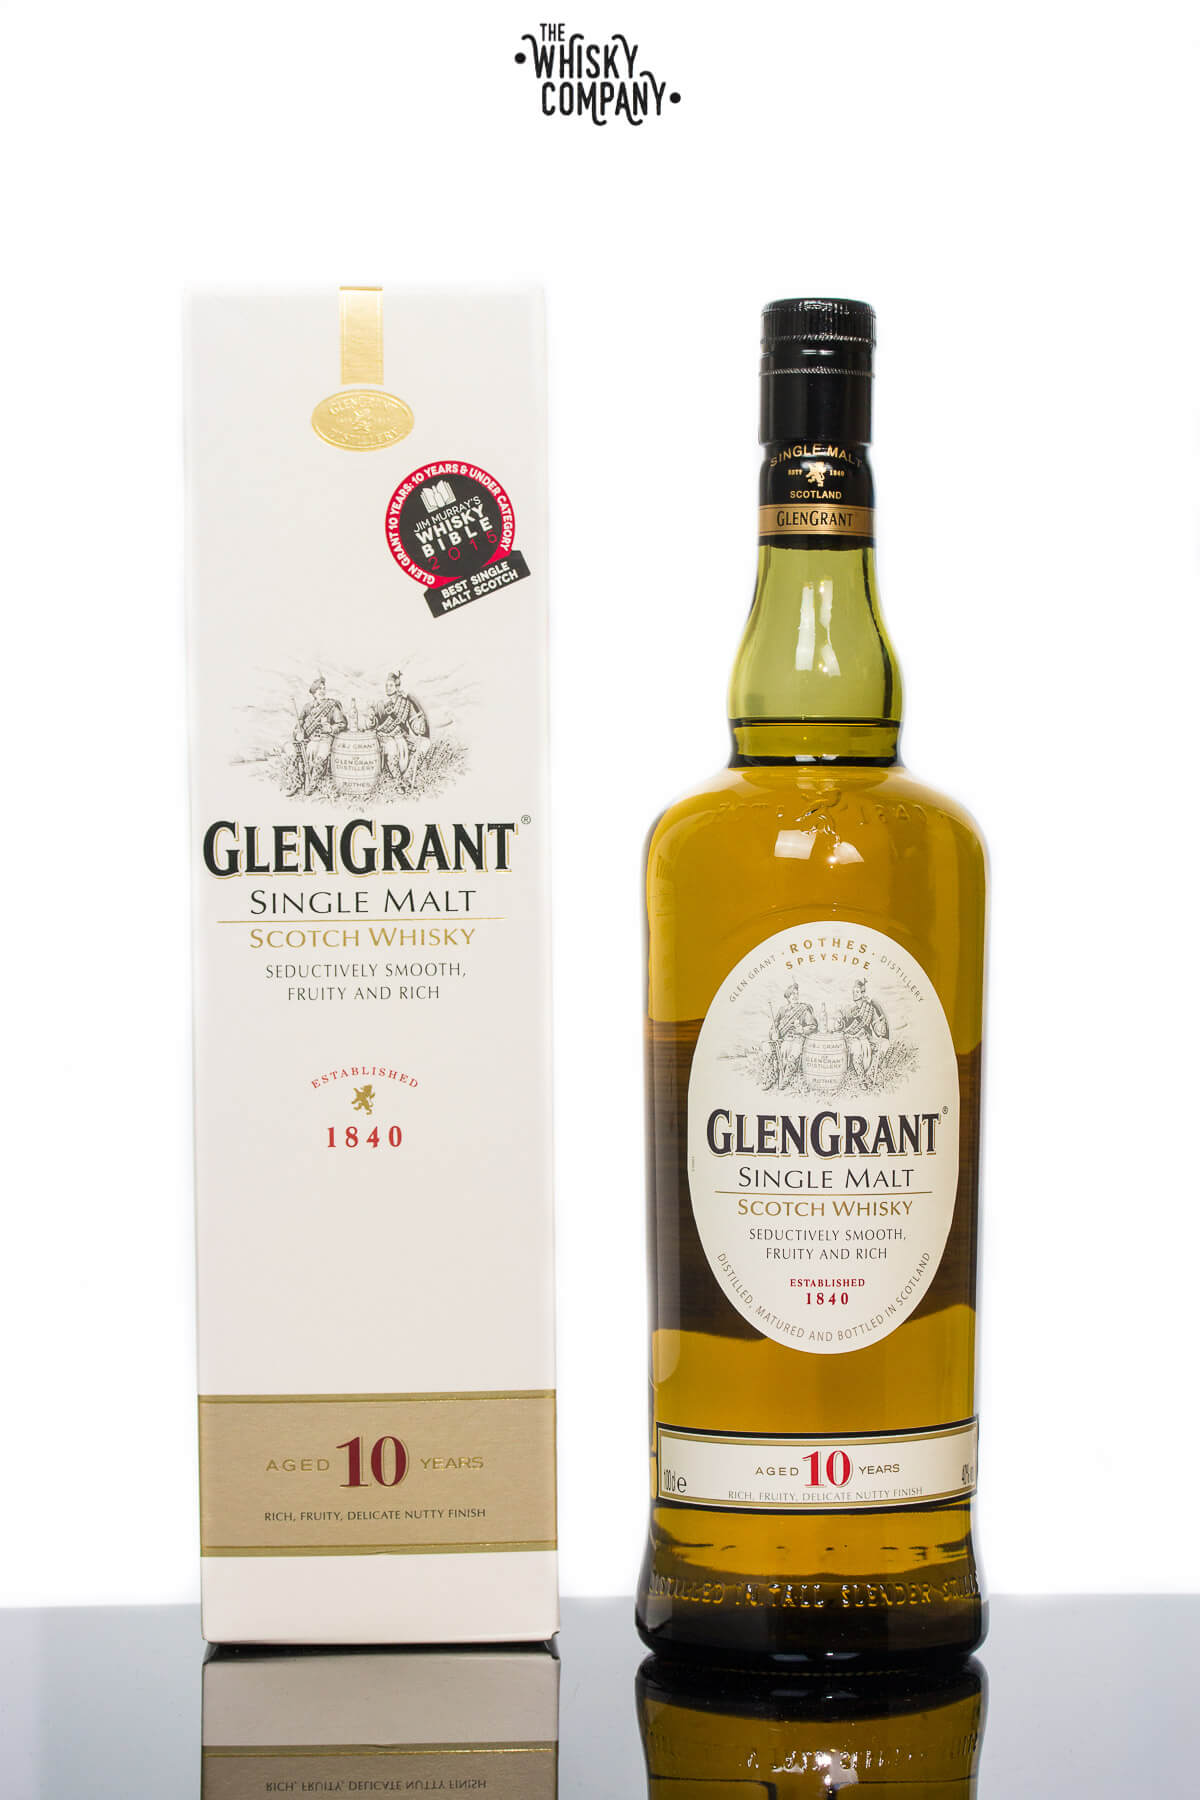 Glen Grant Aged 10 Years Speyside Single Malt Scotch Whisky 1000ml